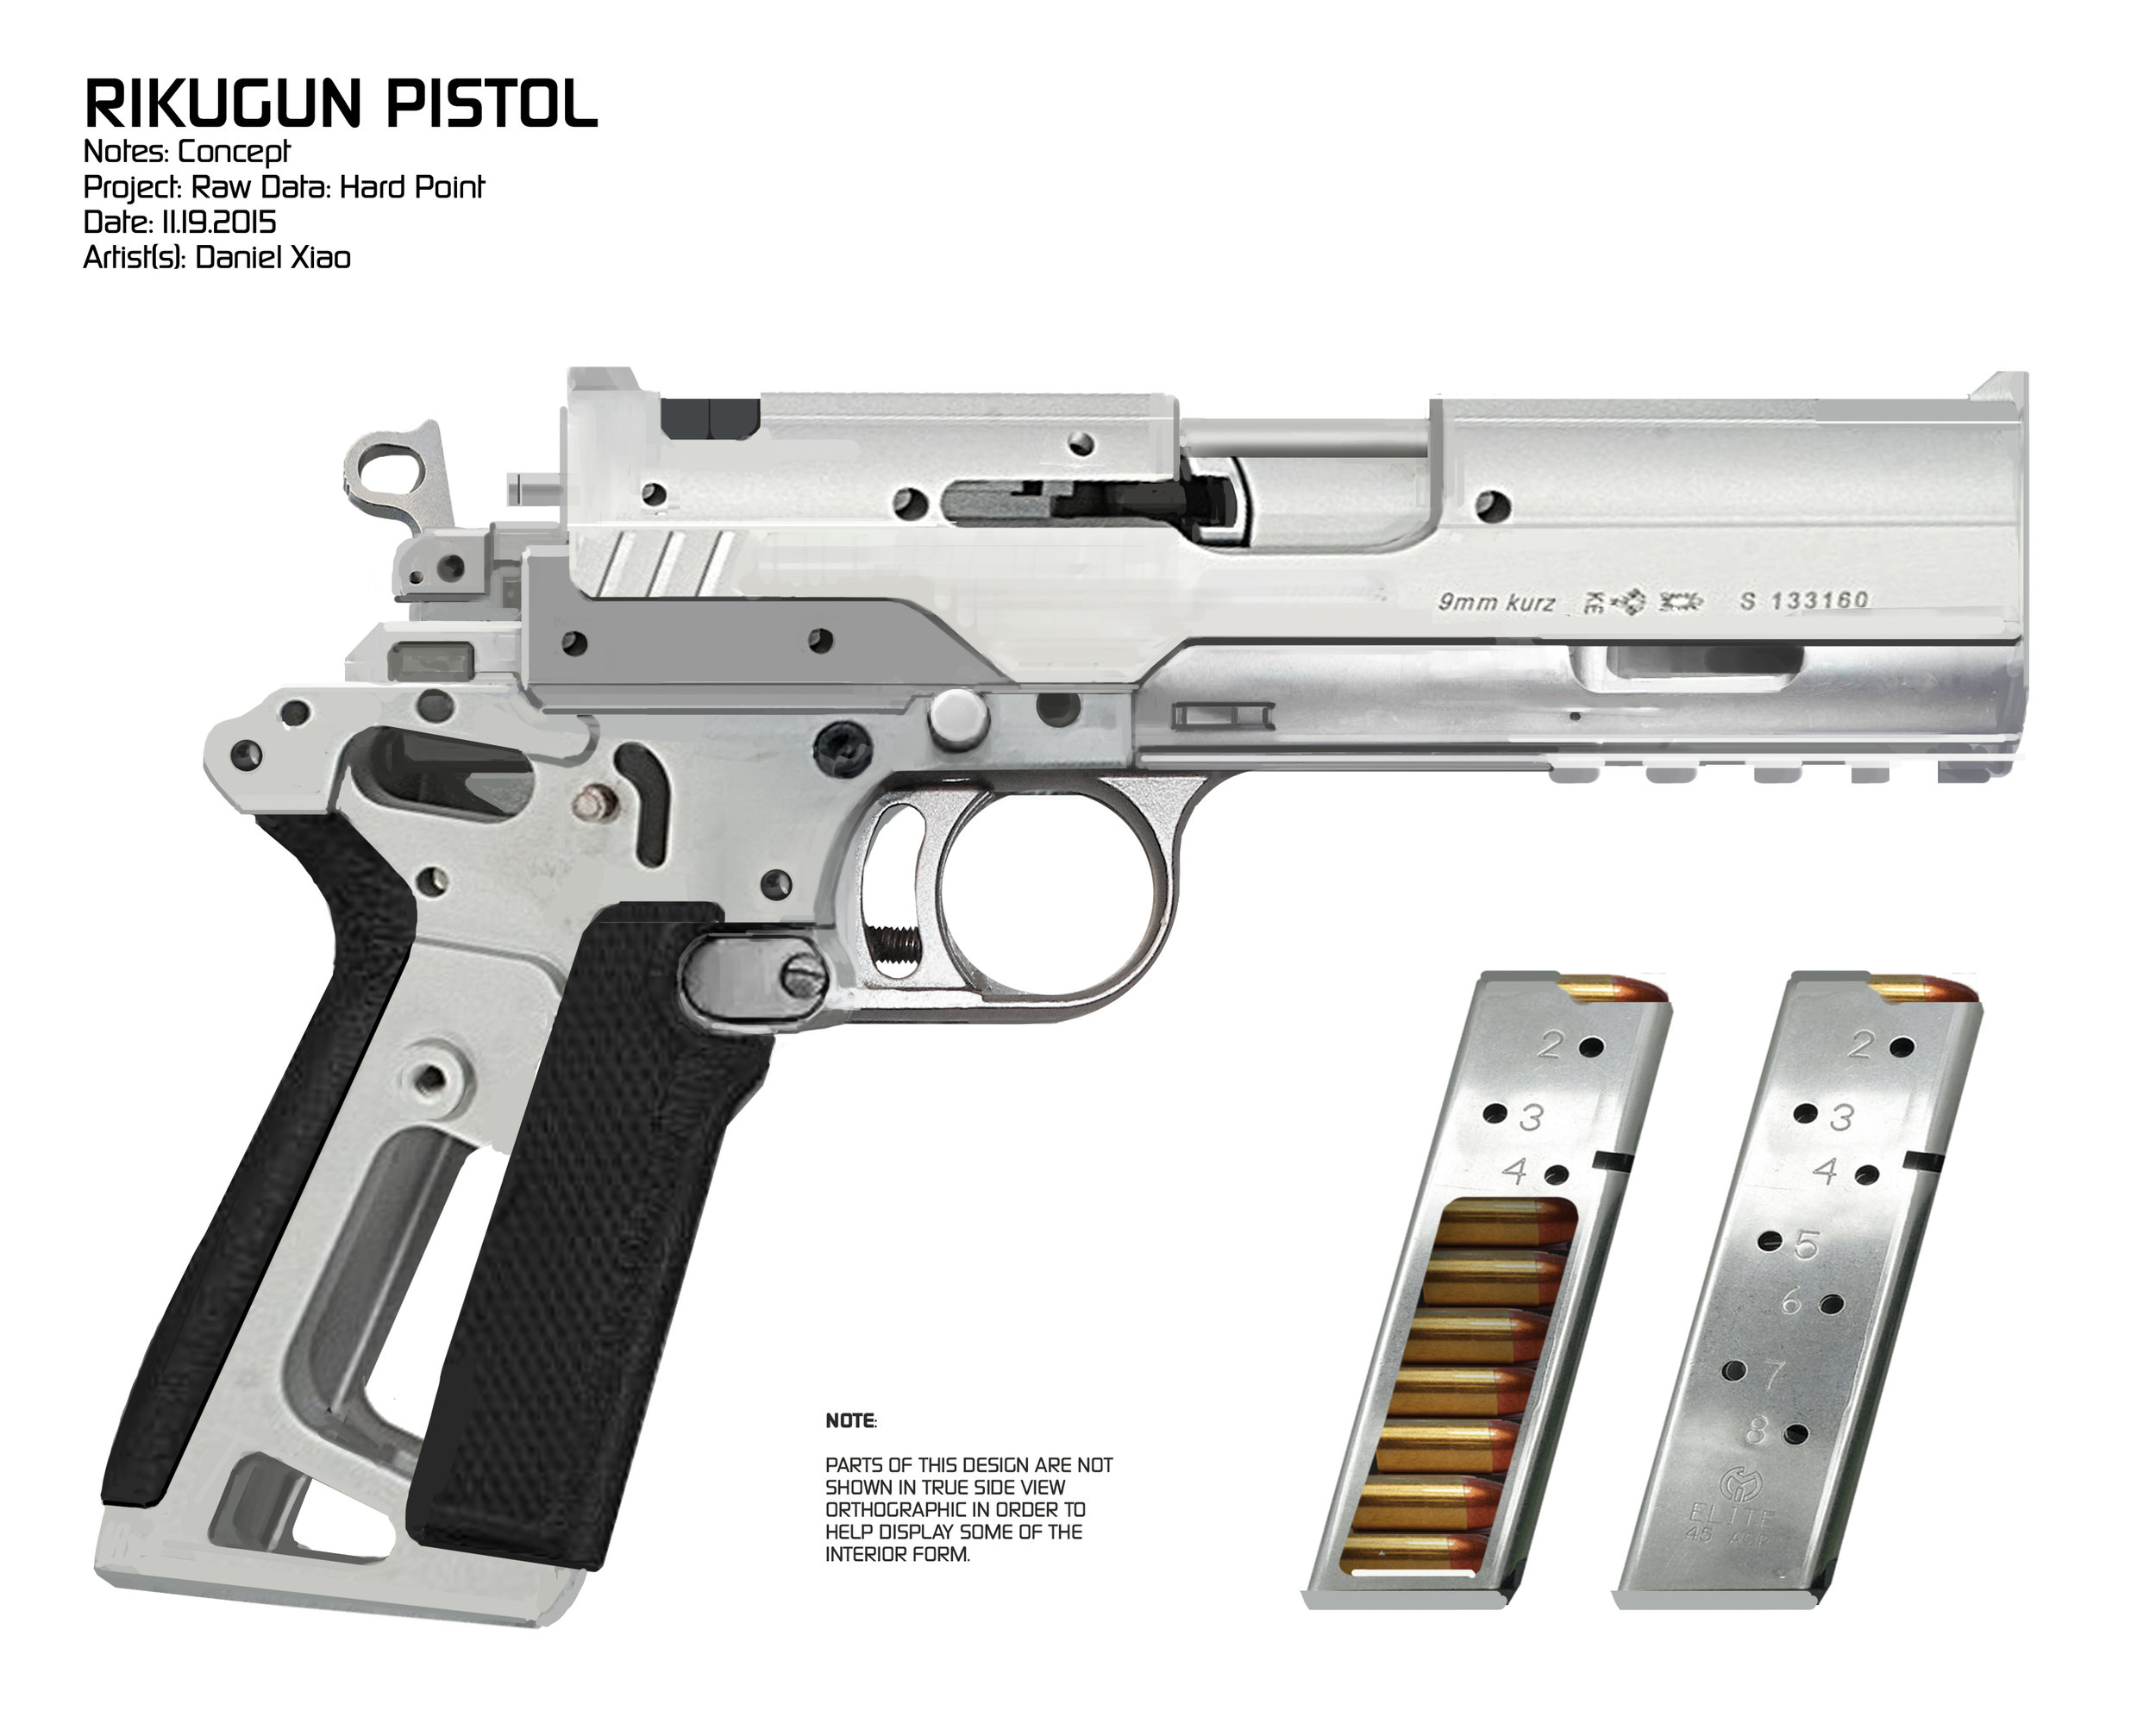 Concept art for Bishop's pistol which featured a hollowed out magazine that allowed the player to watch bullets deplete in real-time. Definitely one of the more engaging details to experience in VR.